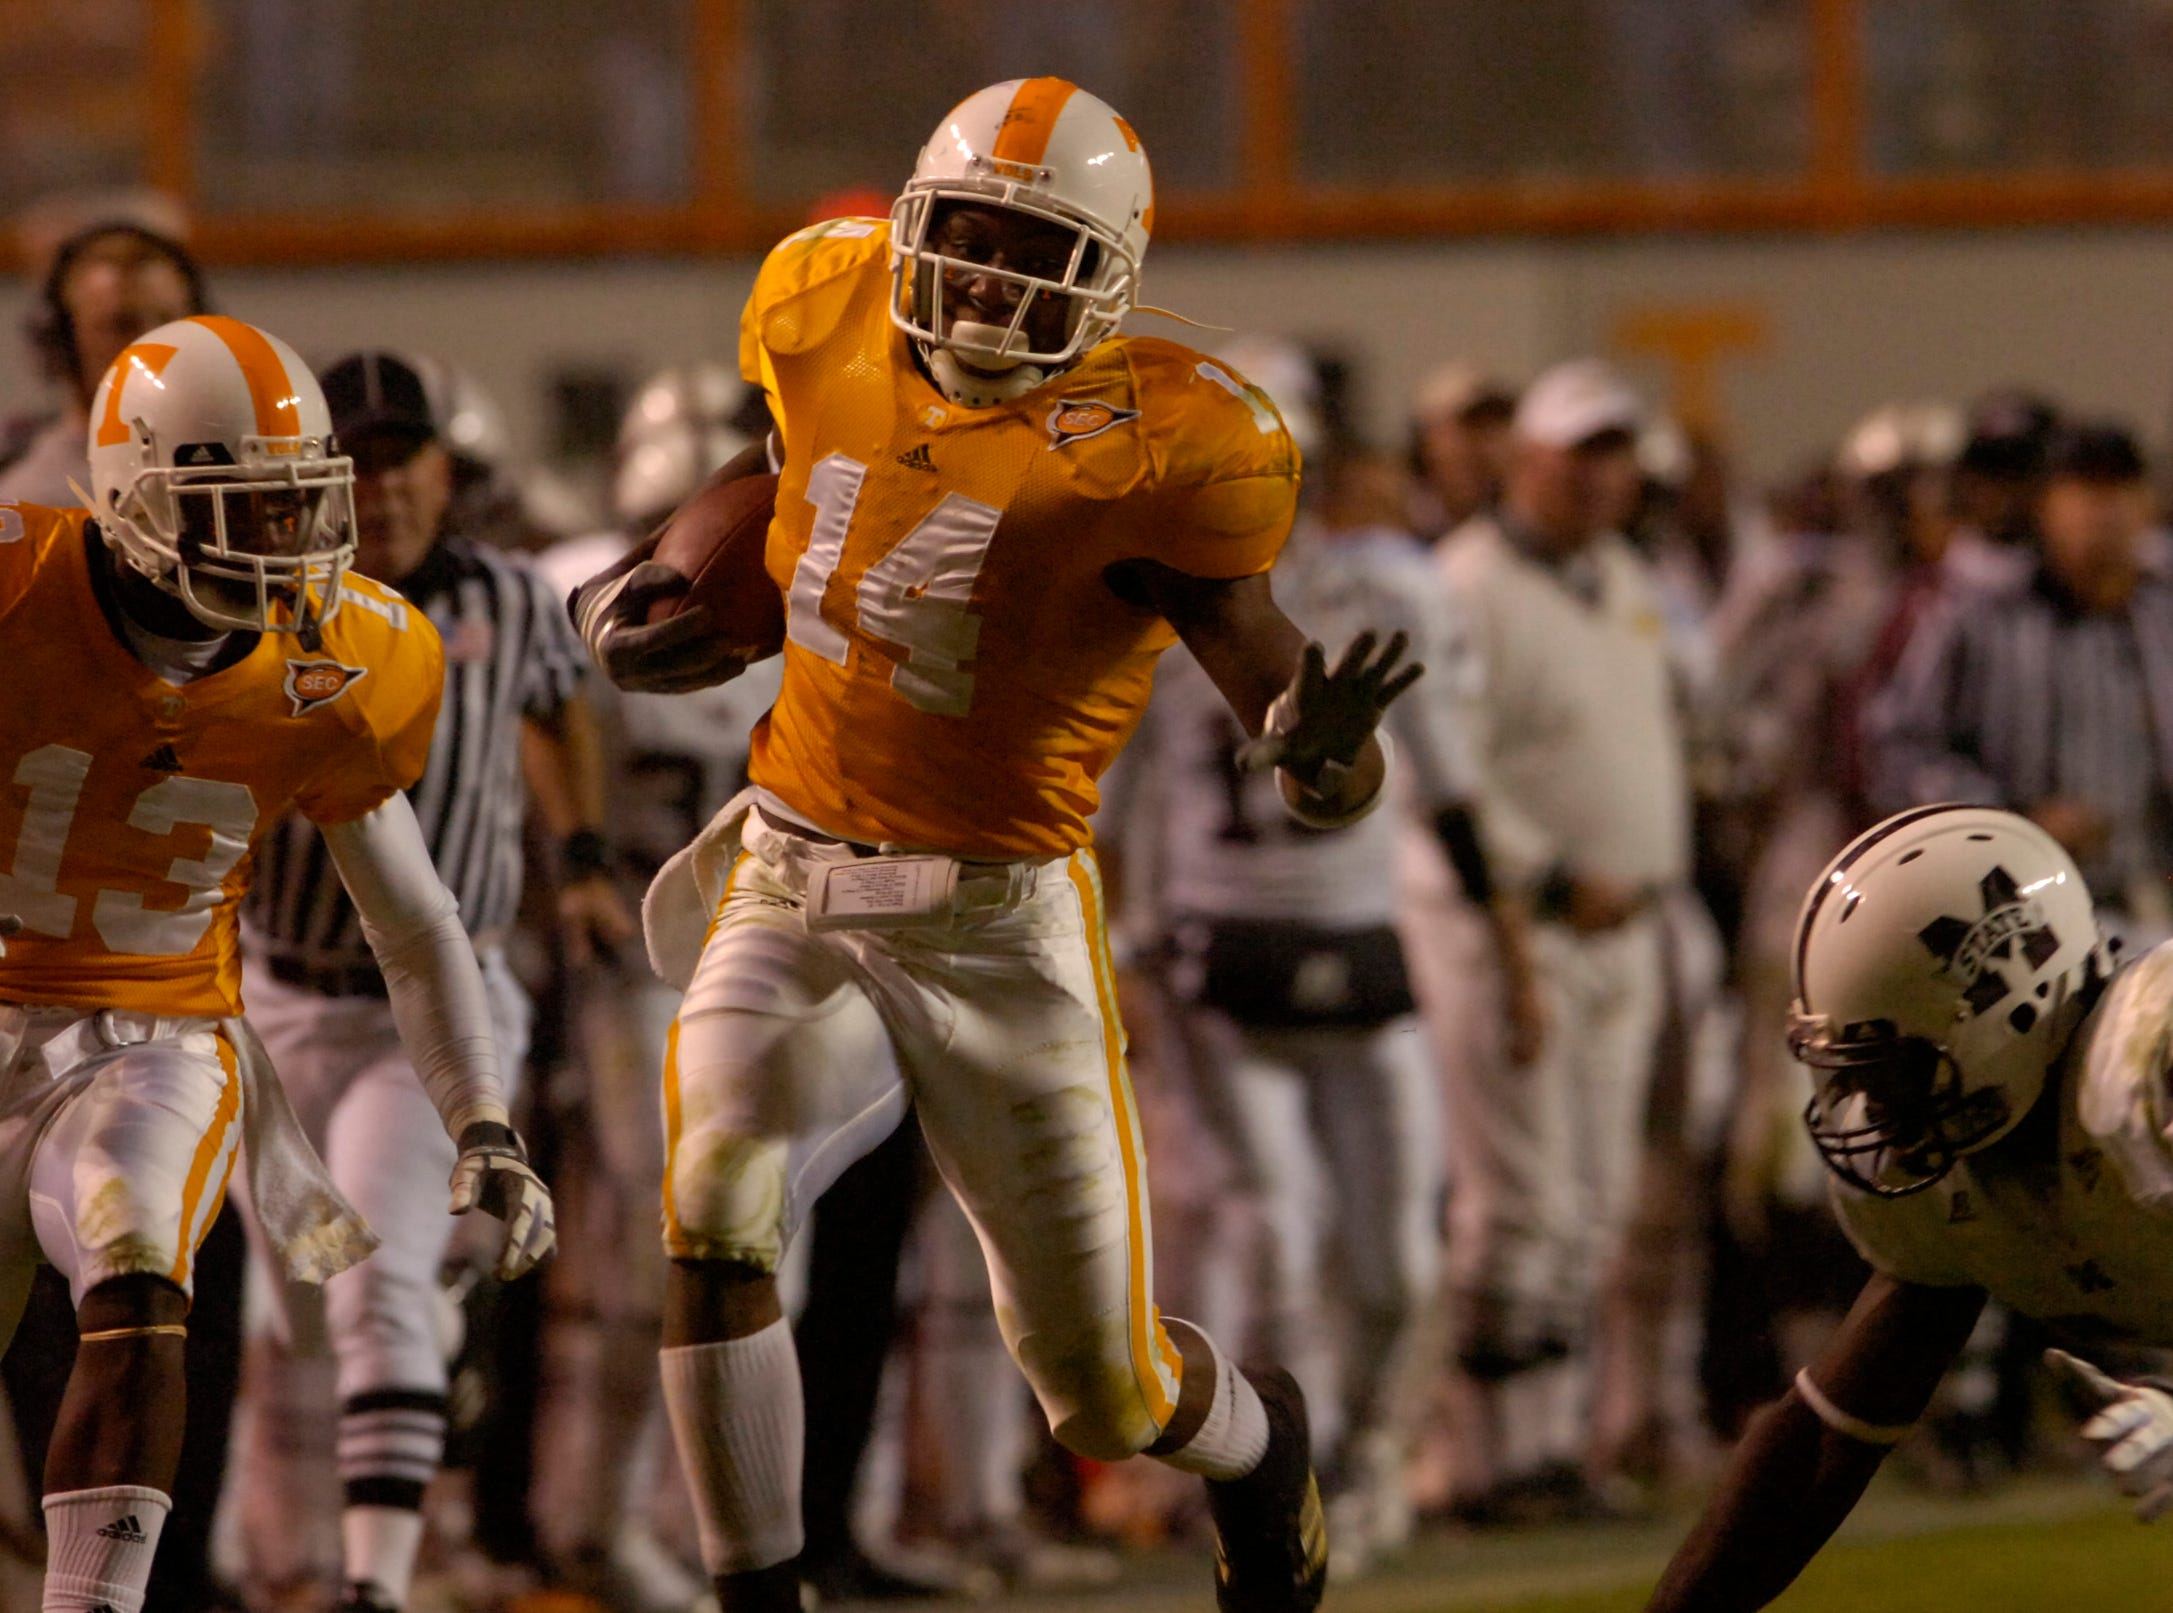 Tennessee safety Eric Berry returns an interception 72 yards for a touchdown against Mississippi State on Saturday at Neyland Stadium. Berry, a sophomore, set a new SEC record for career interception return yards on the play. Tennessee won 34-3, improving to 3-4, 1-3 SEC.